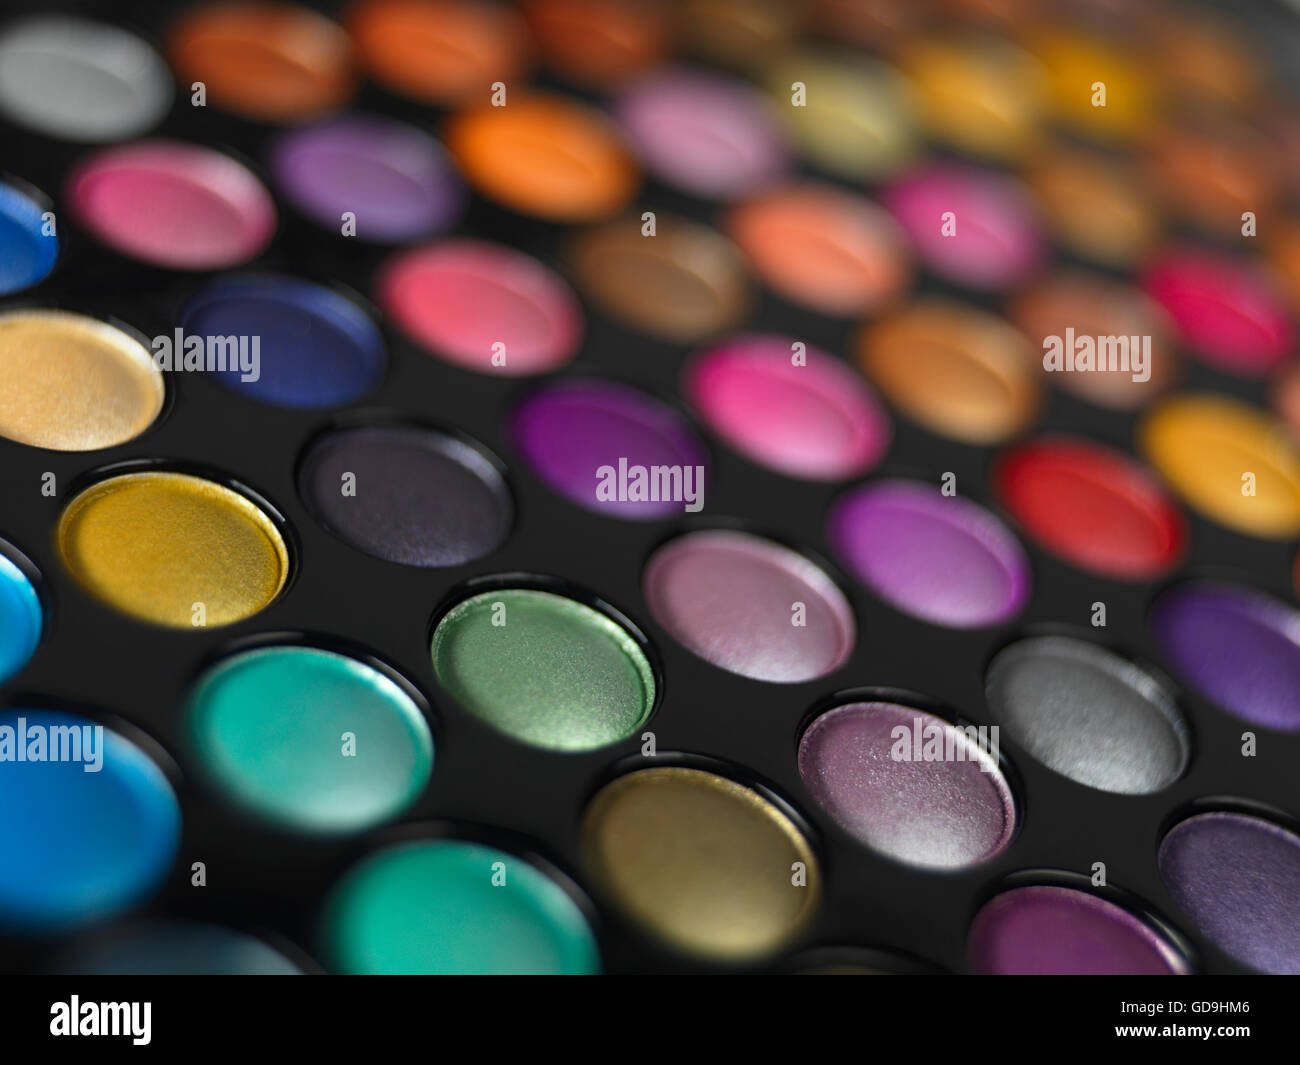 Colorful eyeshadow palette - Stock Image